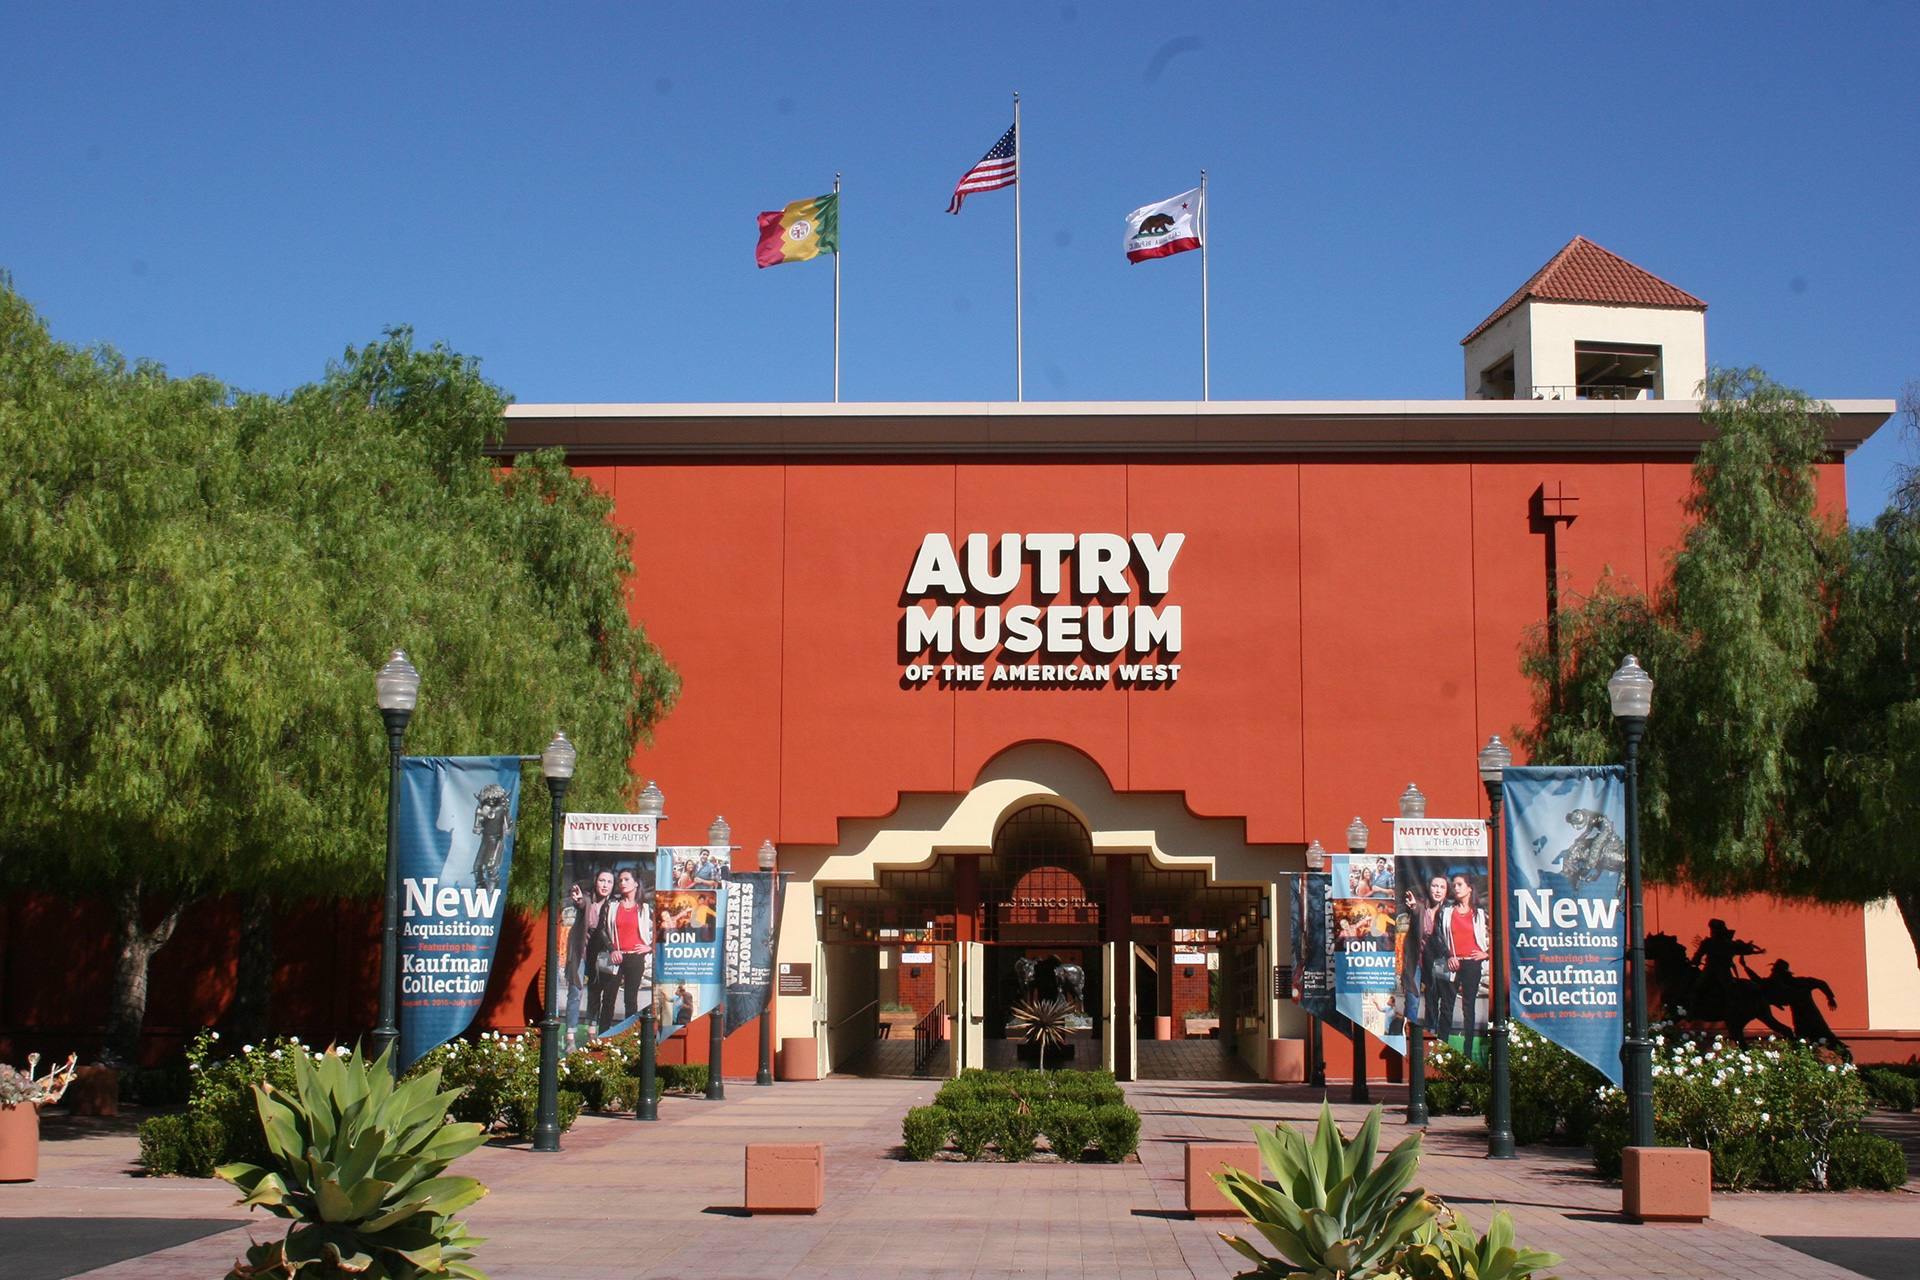 Entrance to the Autry Museum of the American West